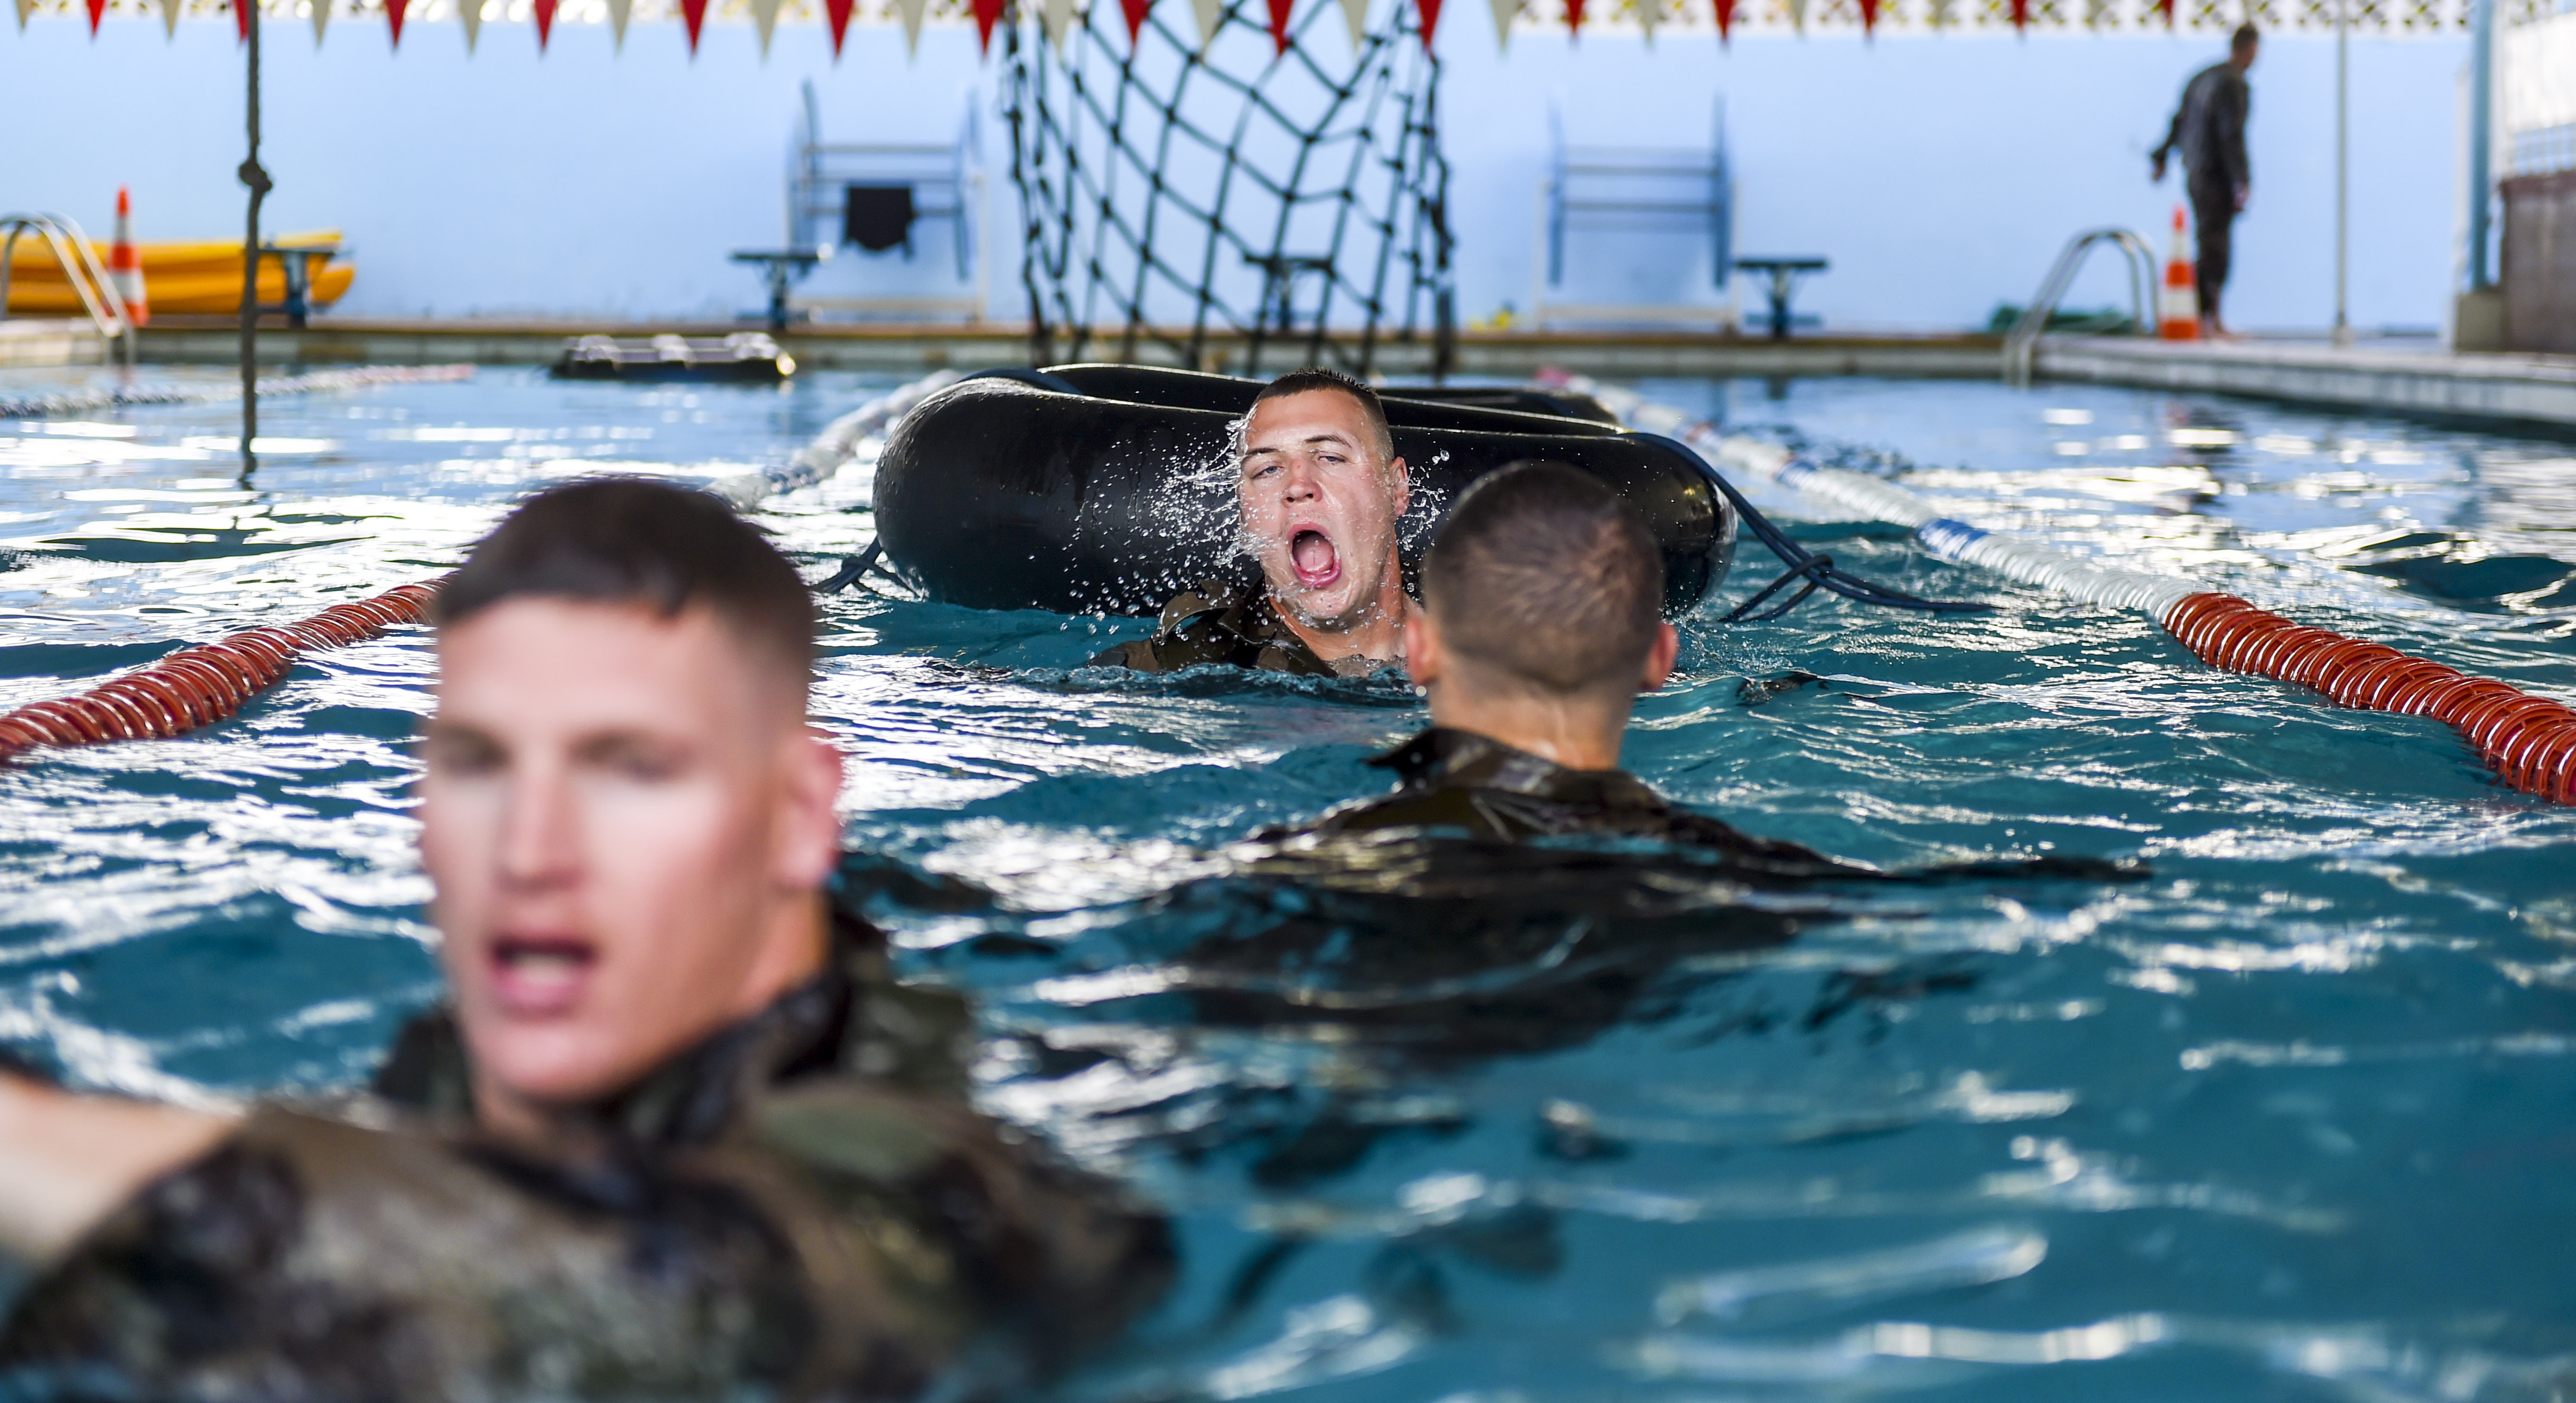 A U.S. Army National Guard Soldier assigned to the 3rd Battalion, 144th Infantry Regiment, Task Force Bayonet, Camp Lemonnier, Djibouti, surfaces for air after swimming through an inner tube during a French Desert Commando Course prequalification assessment at Montclair, Djibouti, Nov. 22, 2017. Along with French marines assigned to the 5th Overseas Interarms Regiment, Djibouti, 30 Task Force Bayonet Soldiers competed in the assessment as a prerequisite to participating in the two-week French Desert Commando Course, which includes desert, water, and mountain portions. (U.S. Air Force photo by Staff Sgt. Timothy Moore)